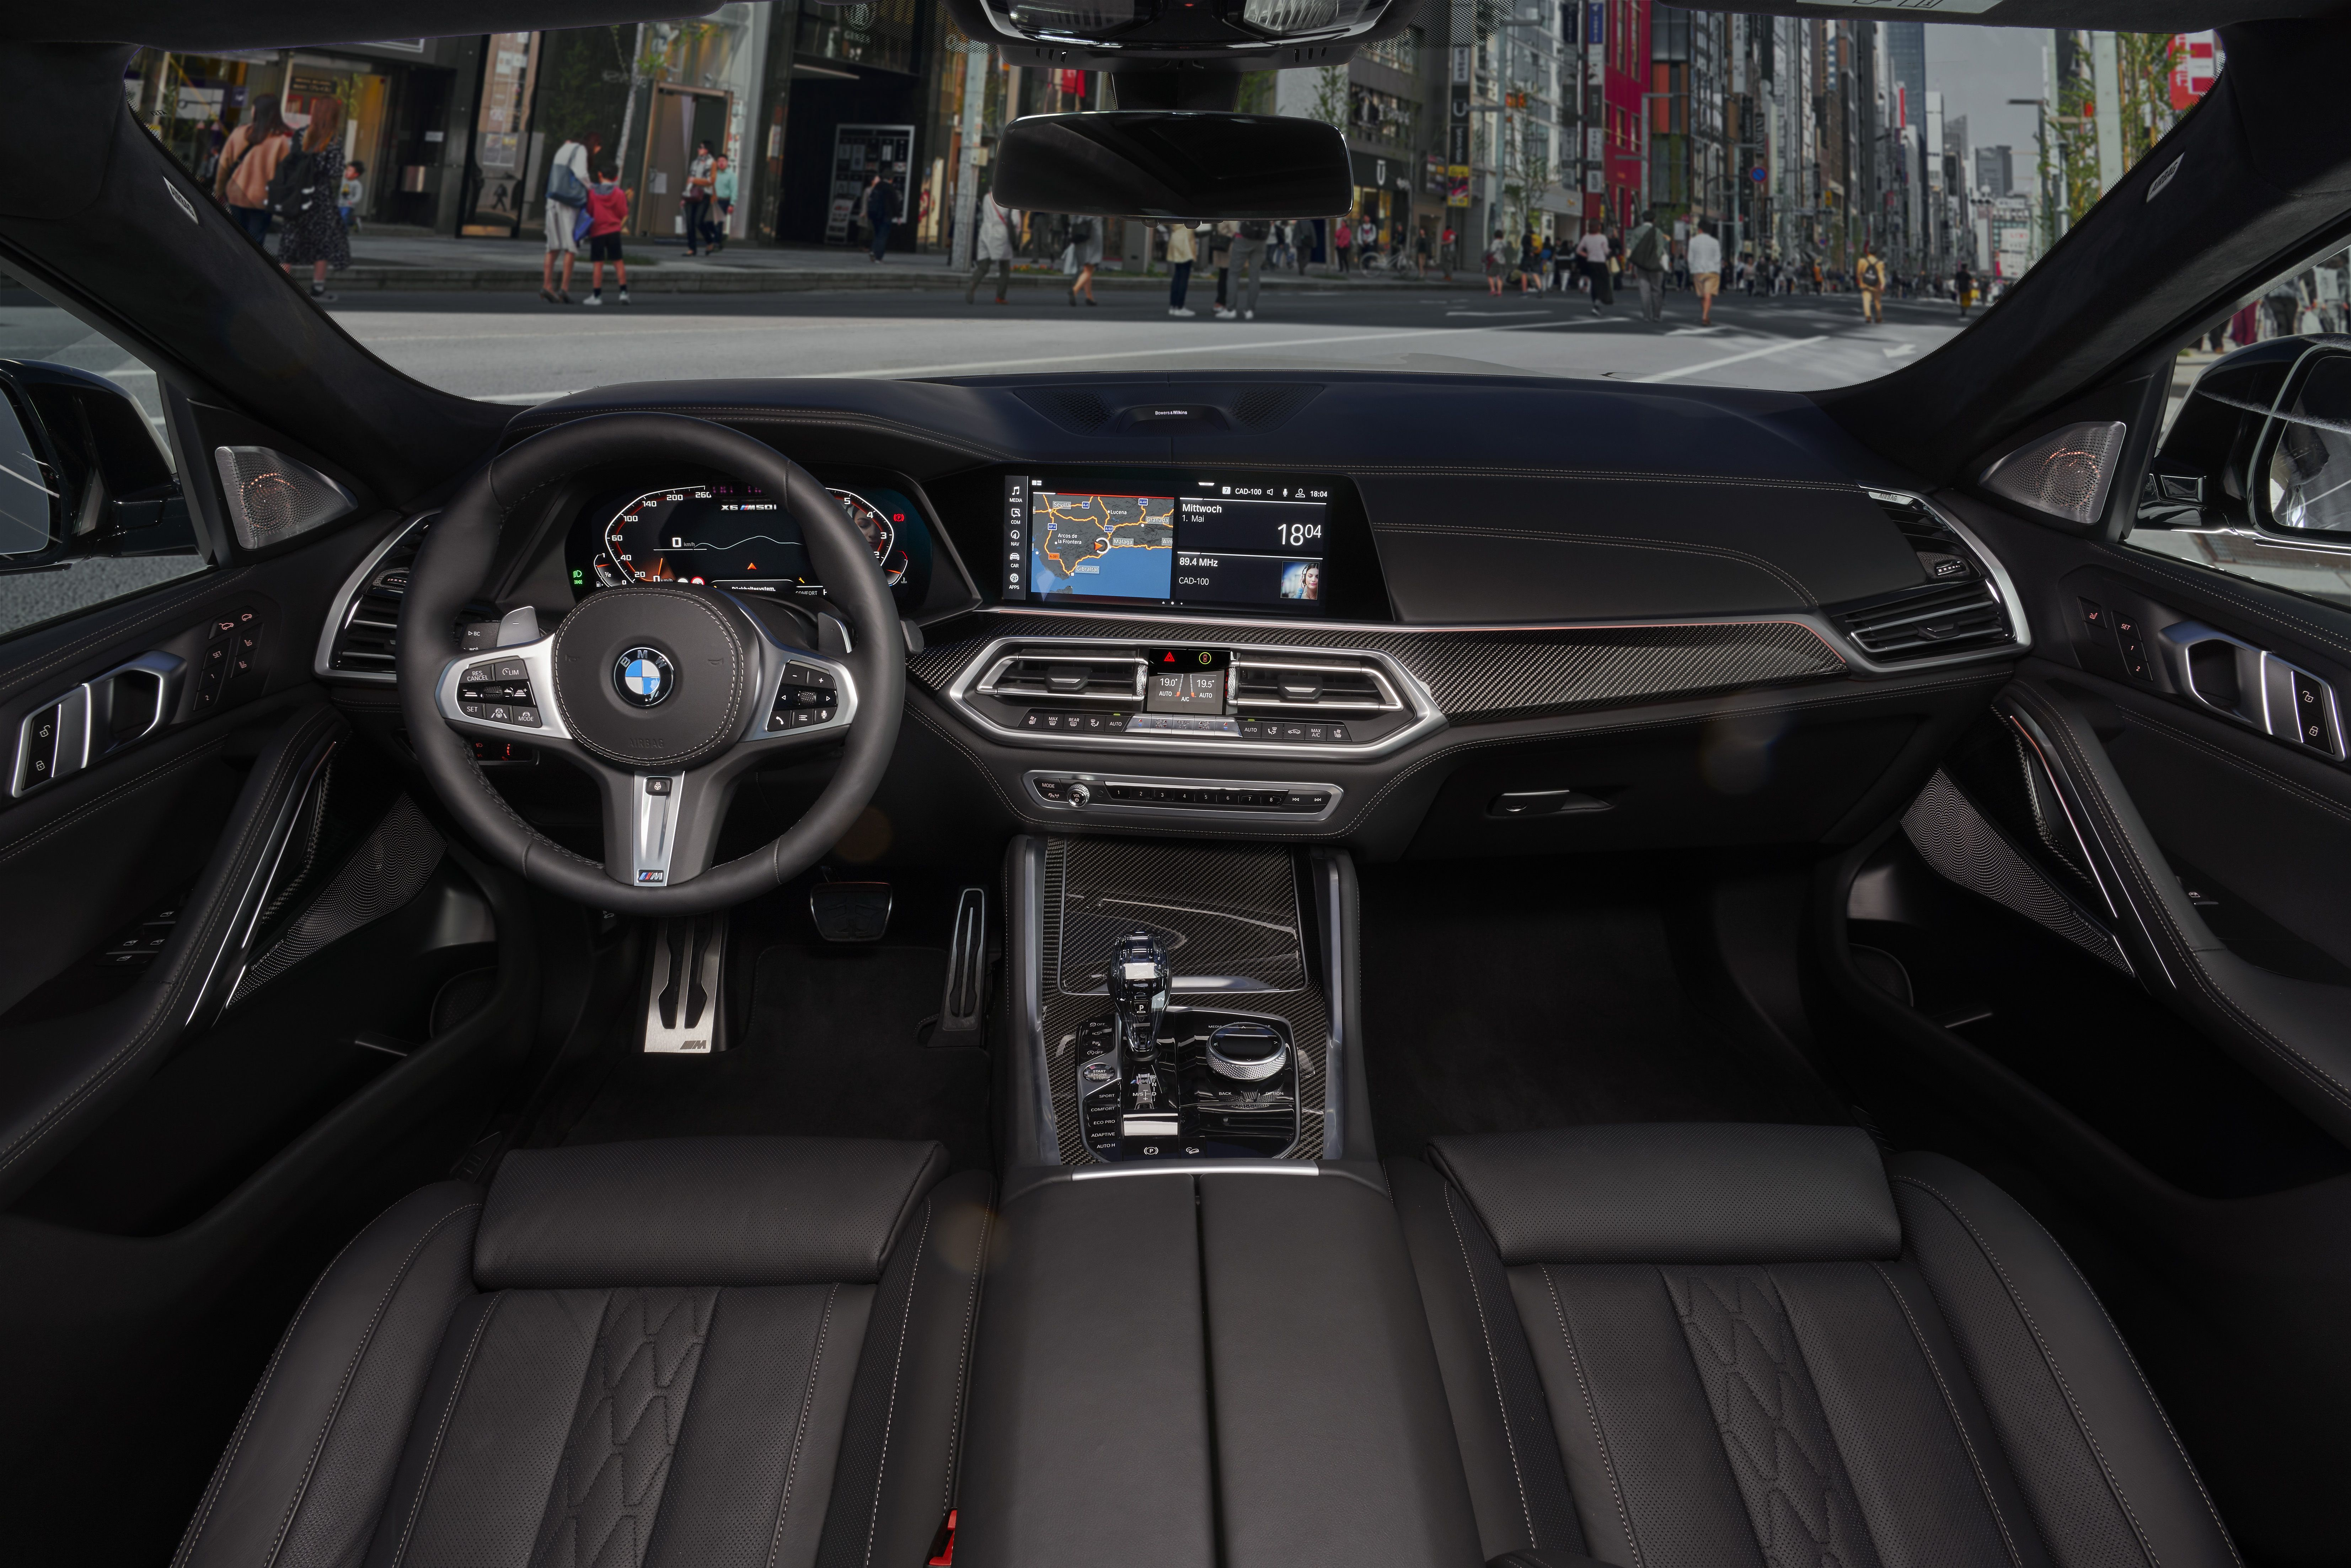 2020 Bmw X3 Preview Price And Availability